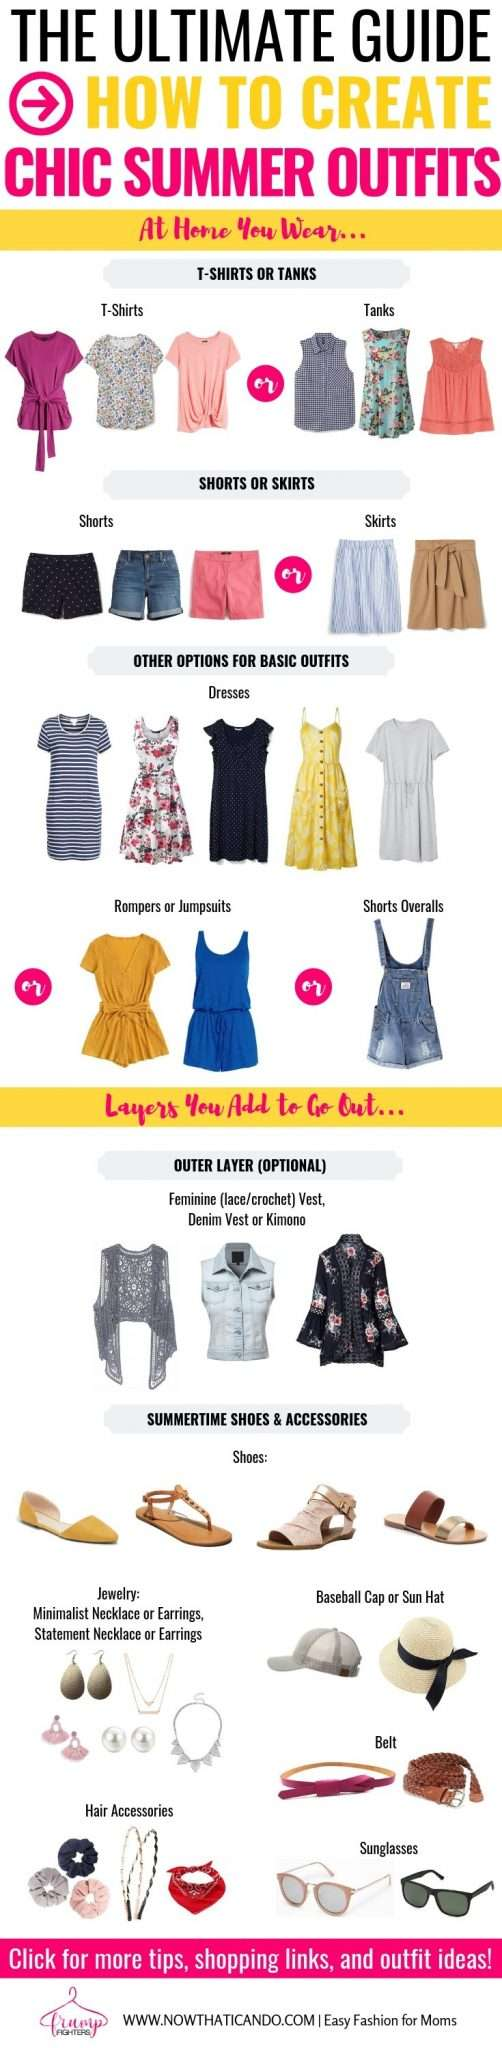 If you're looking for the best casual summer outfit ideas, you have to check out this blog! This mama has tons of outfit formulas that make it easy and simple to create a classy, yet trendy outfit for summer time! Perfect for any hot weather climate too! #summer #fashion #moms #tips #outfits #summerwardrobe